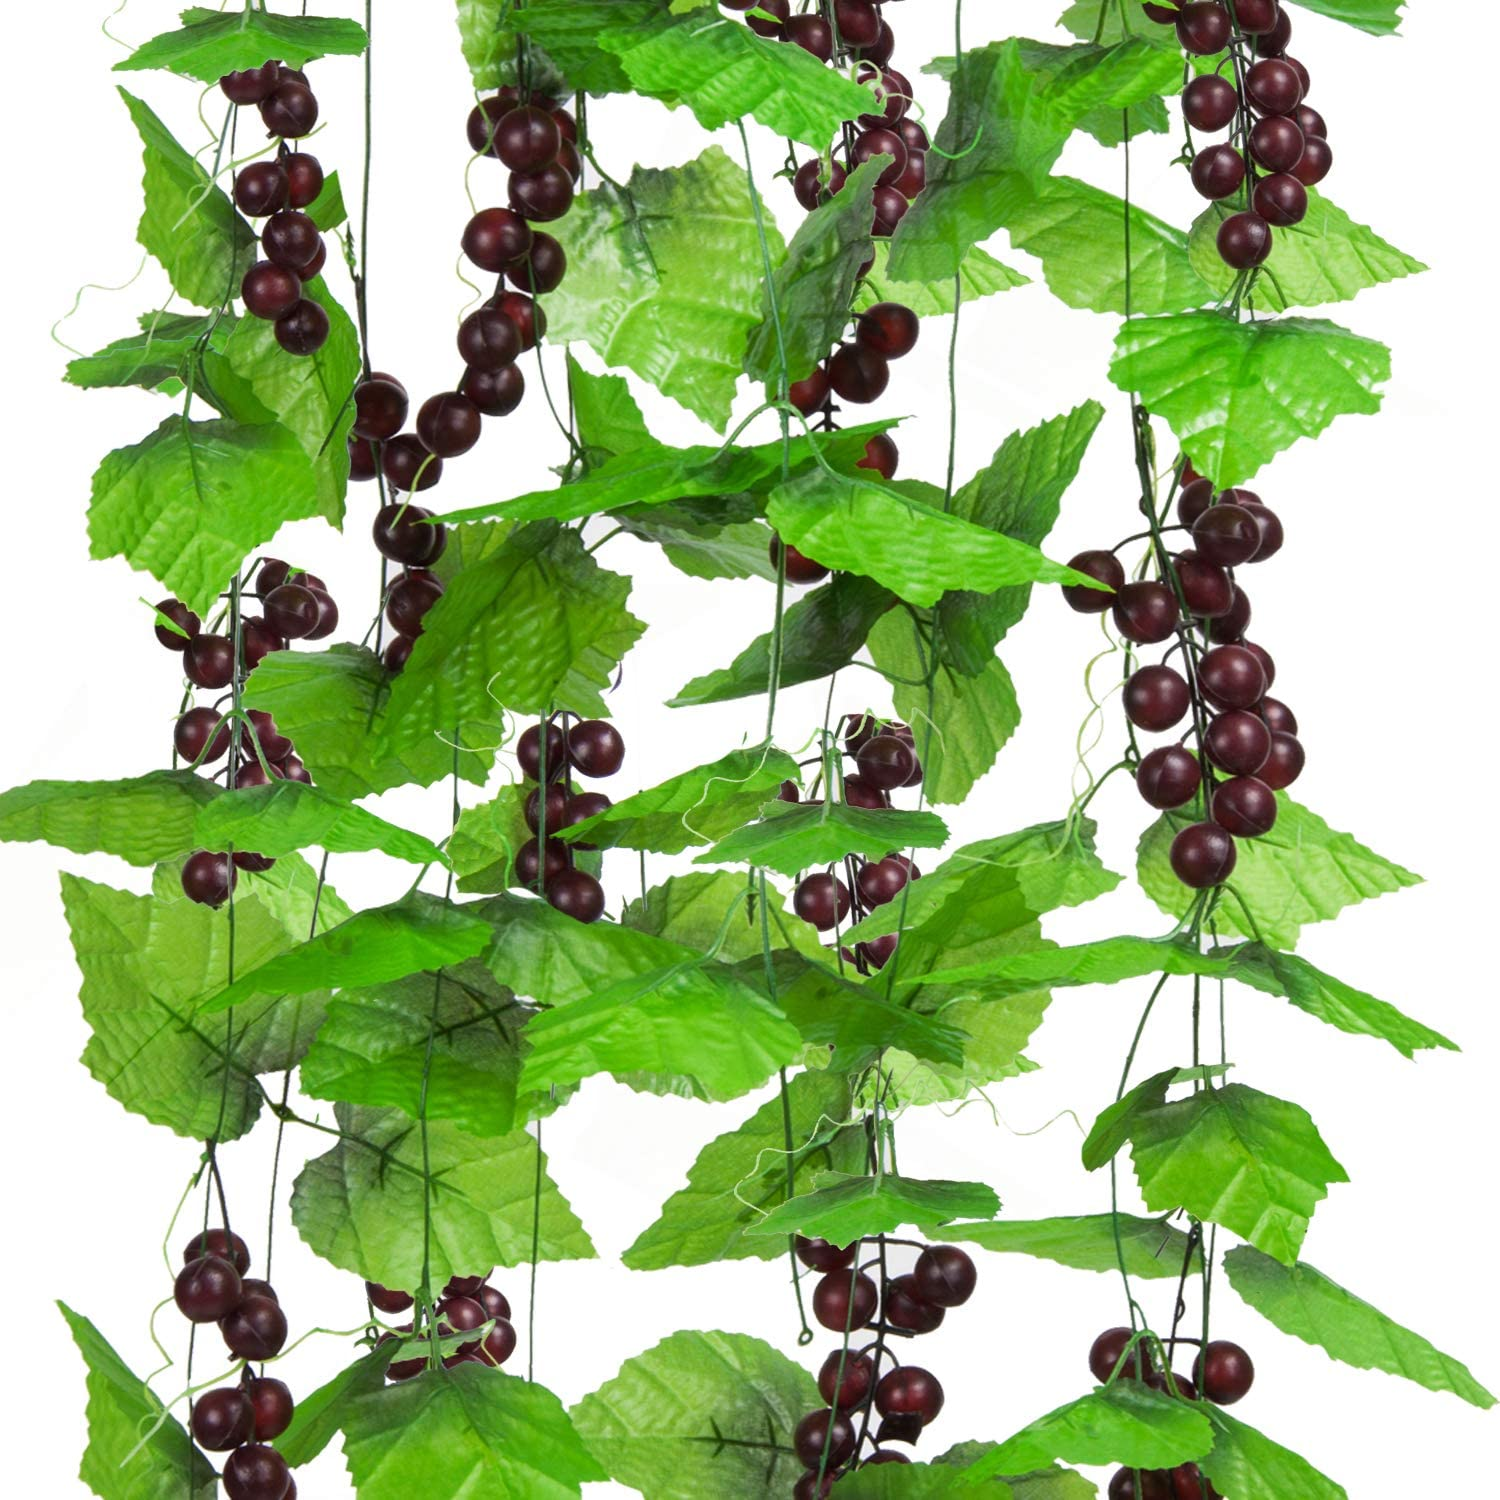 8FT 5pcs Artificial Greenery Chain Grapes Vines Leaves Foliage Simulation Fruits for Home Room Garden Wedding Garland Outside Decoration